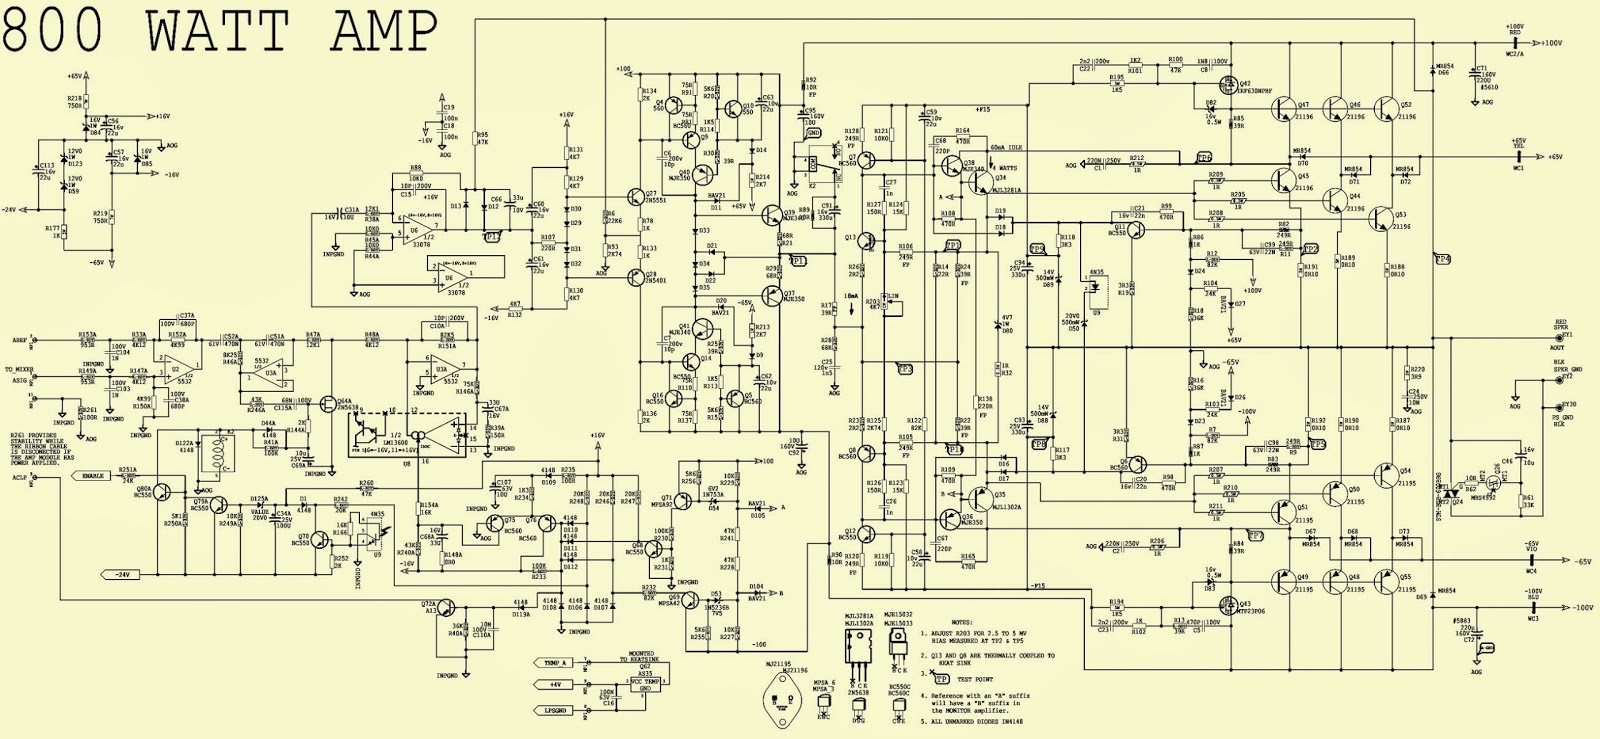 small resolution of 800watts amplifier circuit diagram 800 watts amp 800watts amplifier circuit diagram